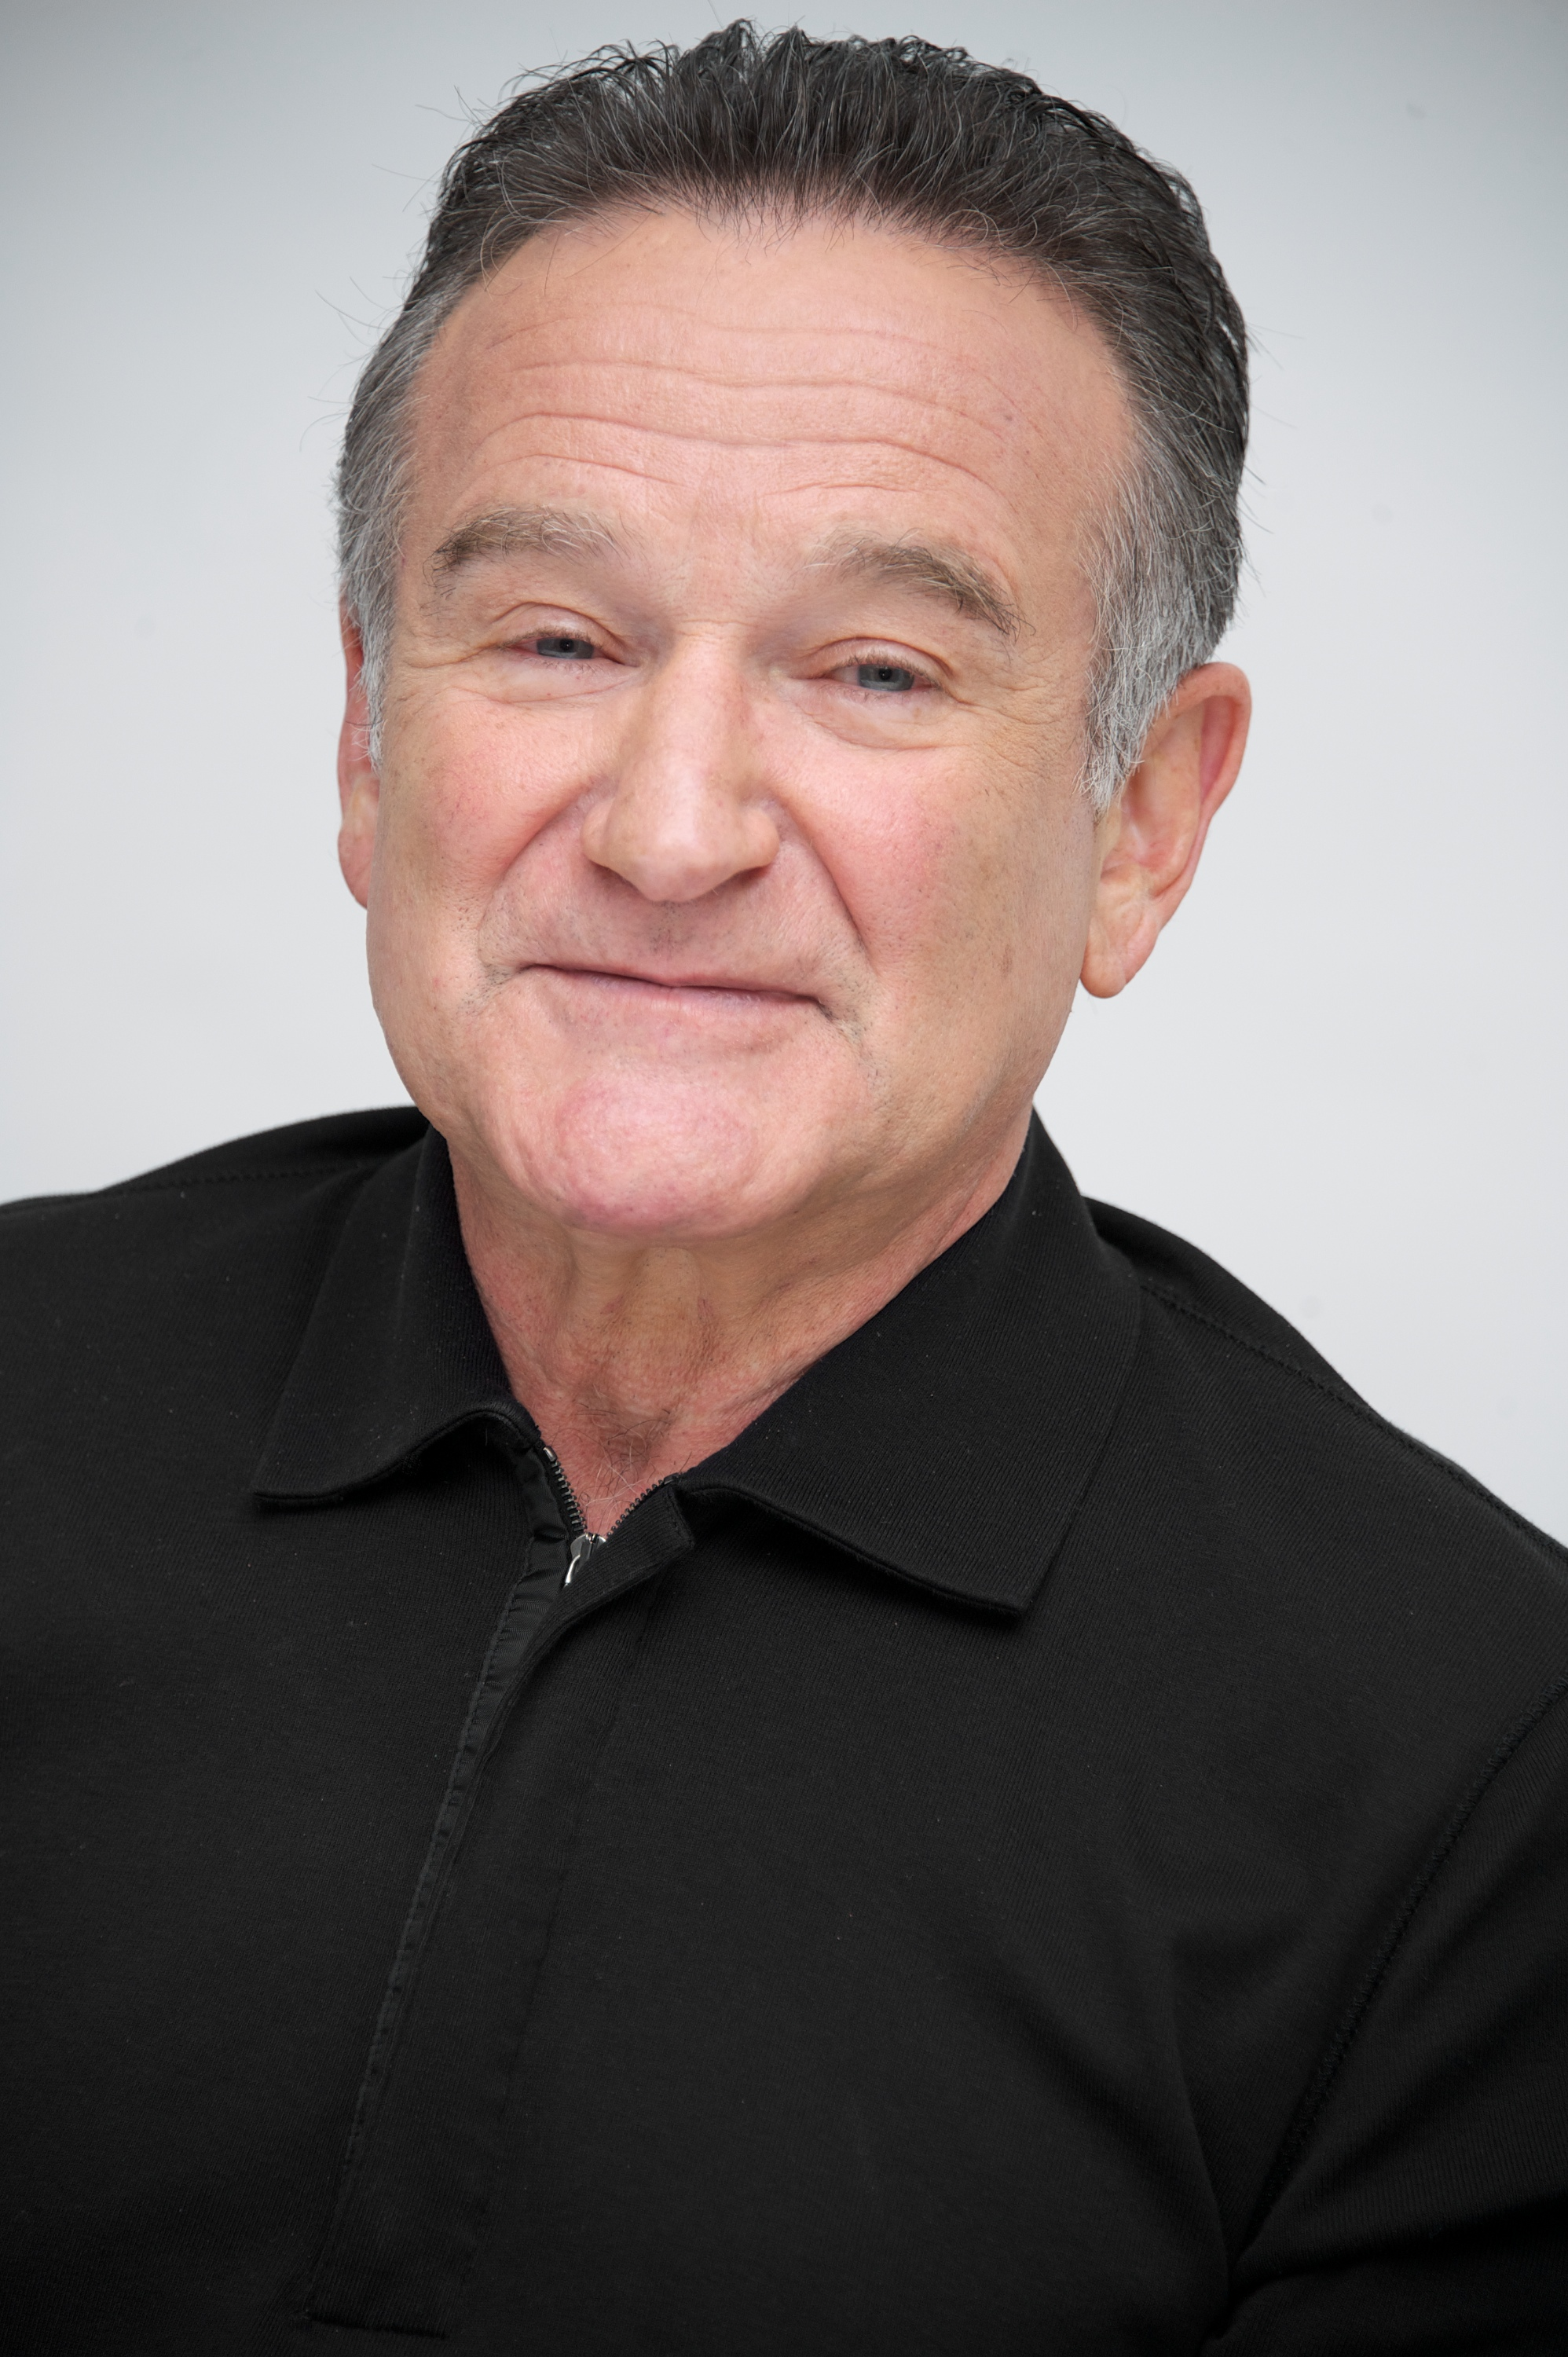 Robin Williams at  The Crazy Ones  Press Conference at the Four Seasons Hotel on October 8, 2013 in Beverly Hills, California.